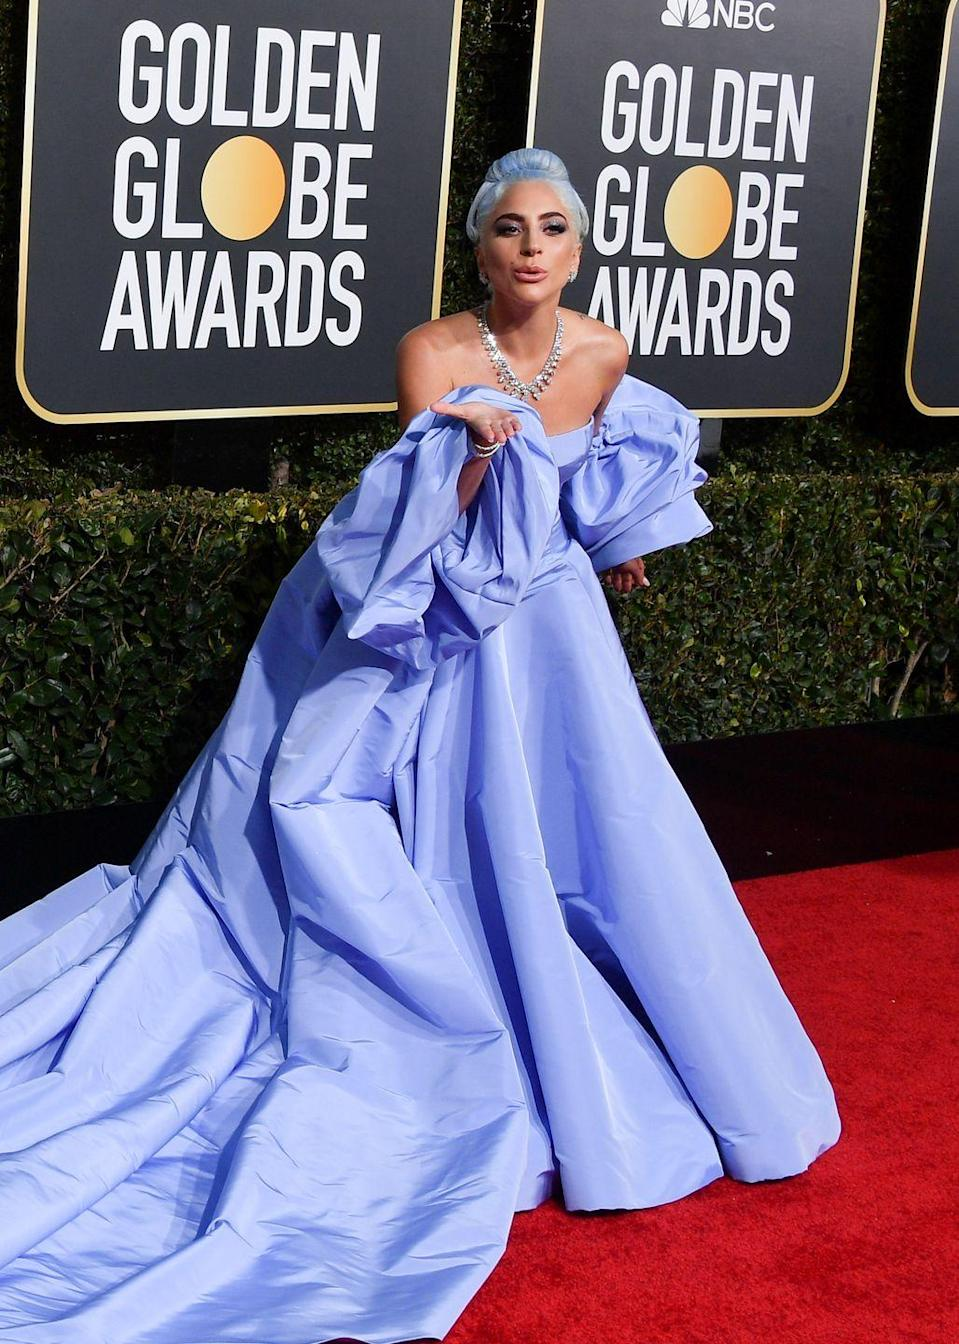 "<p>2019 was quite the year for Lady Gaga, which saw her scooping countless awards for A Star is Born. It also saw her upping her game fashion-wise in a series of high-octane gowns, culminating in her <a href=""https://www.harpersbazaar.com/uk/fashion/fashion-news/a27386074/lady-gaga-strip-tease-met-gala/"" rel=""nofollow noopener"" target=""_blank"" data-ylk=""slk:striptease entrance at the Met Gala."" class=""link rapid-noclick-resp"">striptease entrance at the Met Gala.</a> However, her red carpet highlight was this sky-blue Valentino couture dress that she wore to the Golden Globes. Gaga's gown<a href=""https://www.harpersbazaar.com/uk/fashion/fashion-news/a25771495/lady-gaga-judy-garland-dress-tribute-accident/"" rel=""nofollow noopener"" target=""_blank"" data-ylk=""slk:resembled a dress that Judy Garland"" class=""link rapid-noclick-resp""> resembled a dress that Judy Garland</a> wore in the original 1954 version of A Star is Born - the role for which Gaga was nominated. She later said that the comparison was actually a happy accident, but admitted that ""it looks an awful lot like it, doesn't it?""</p>"